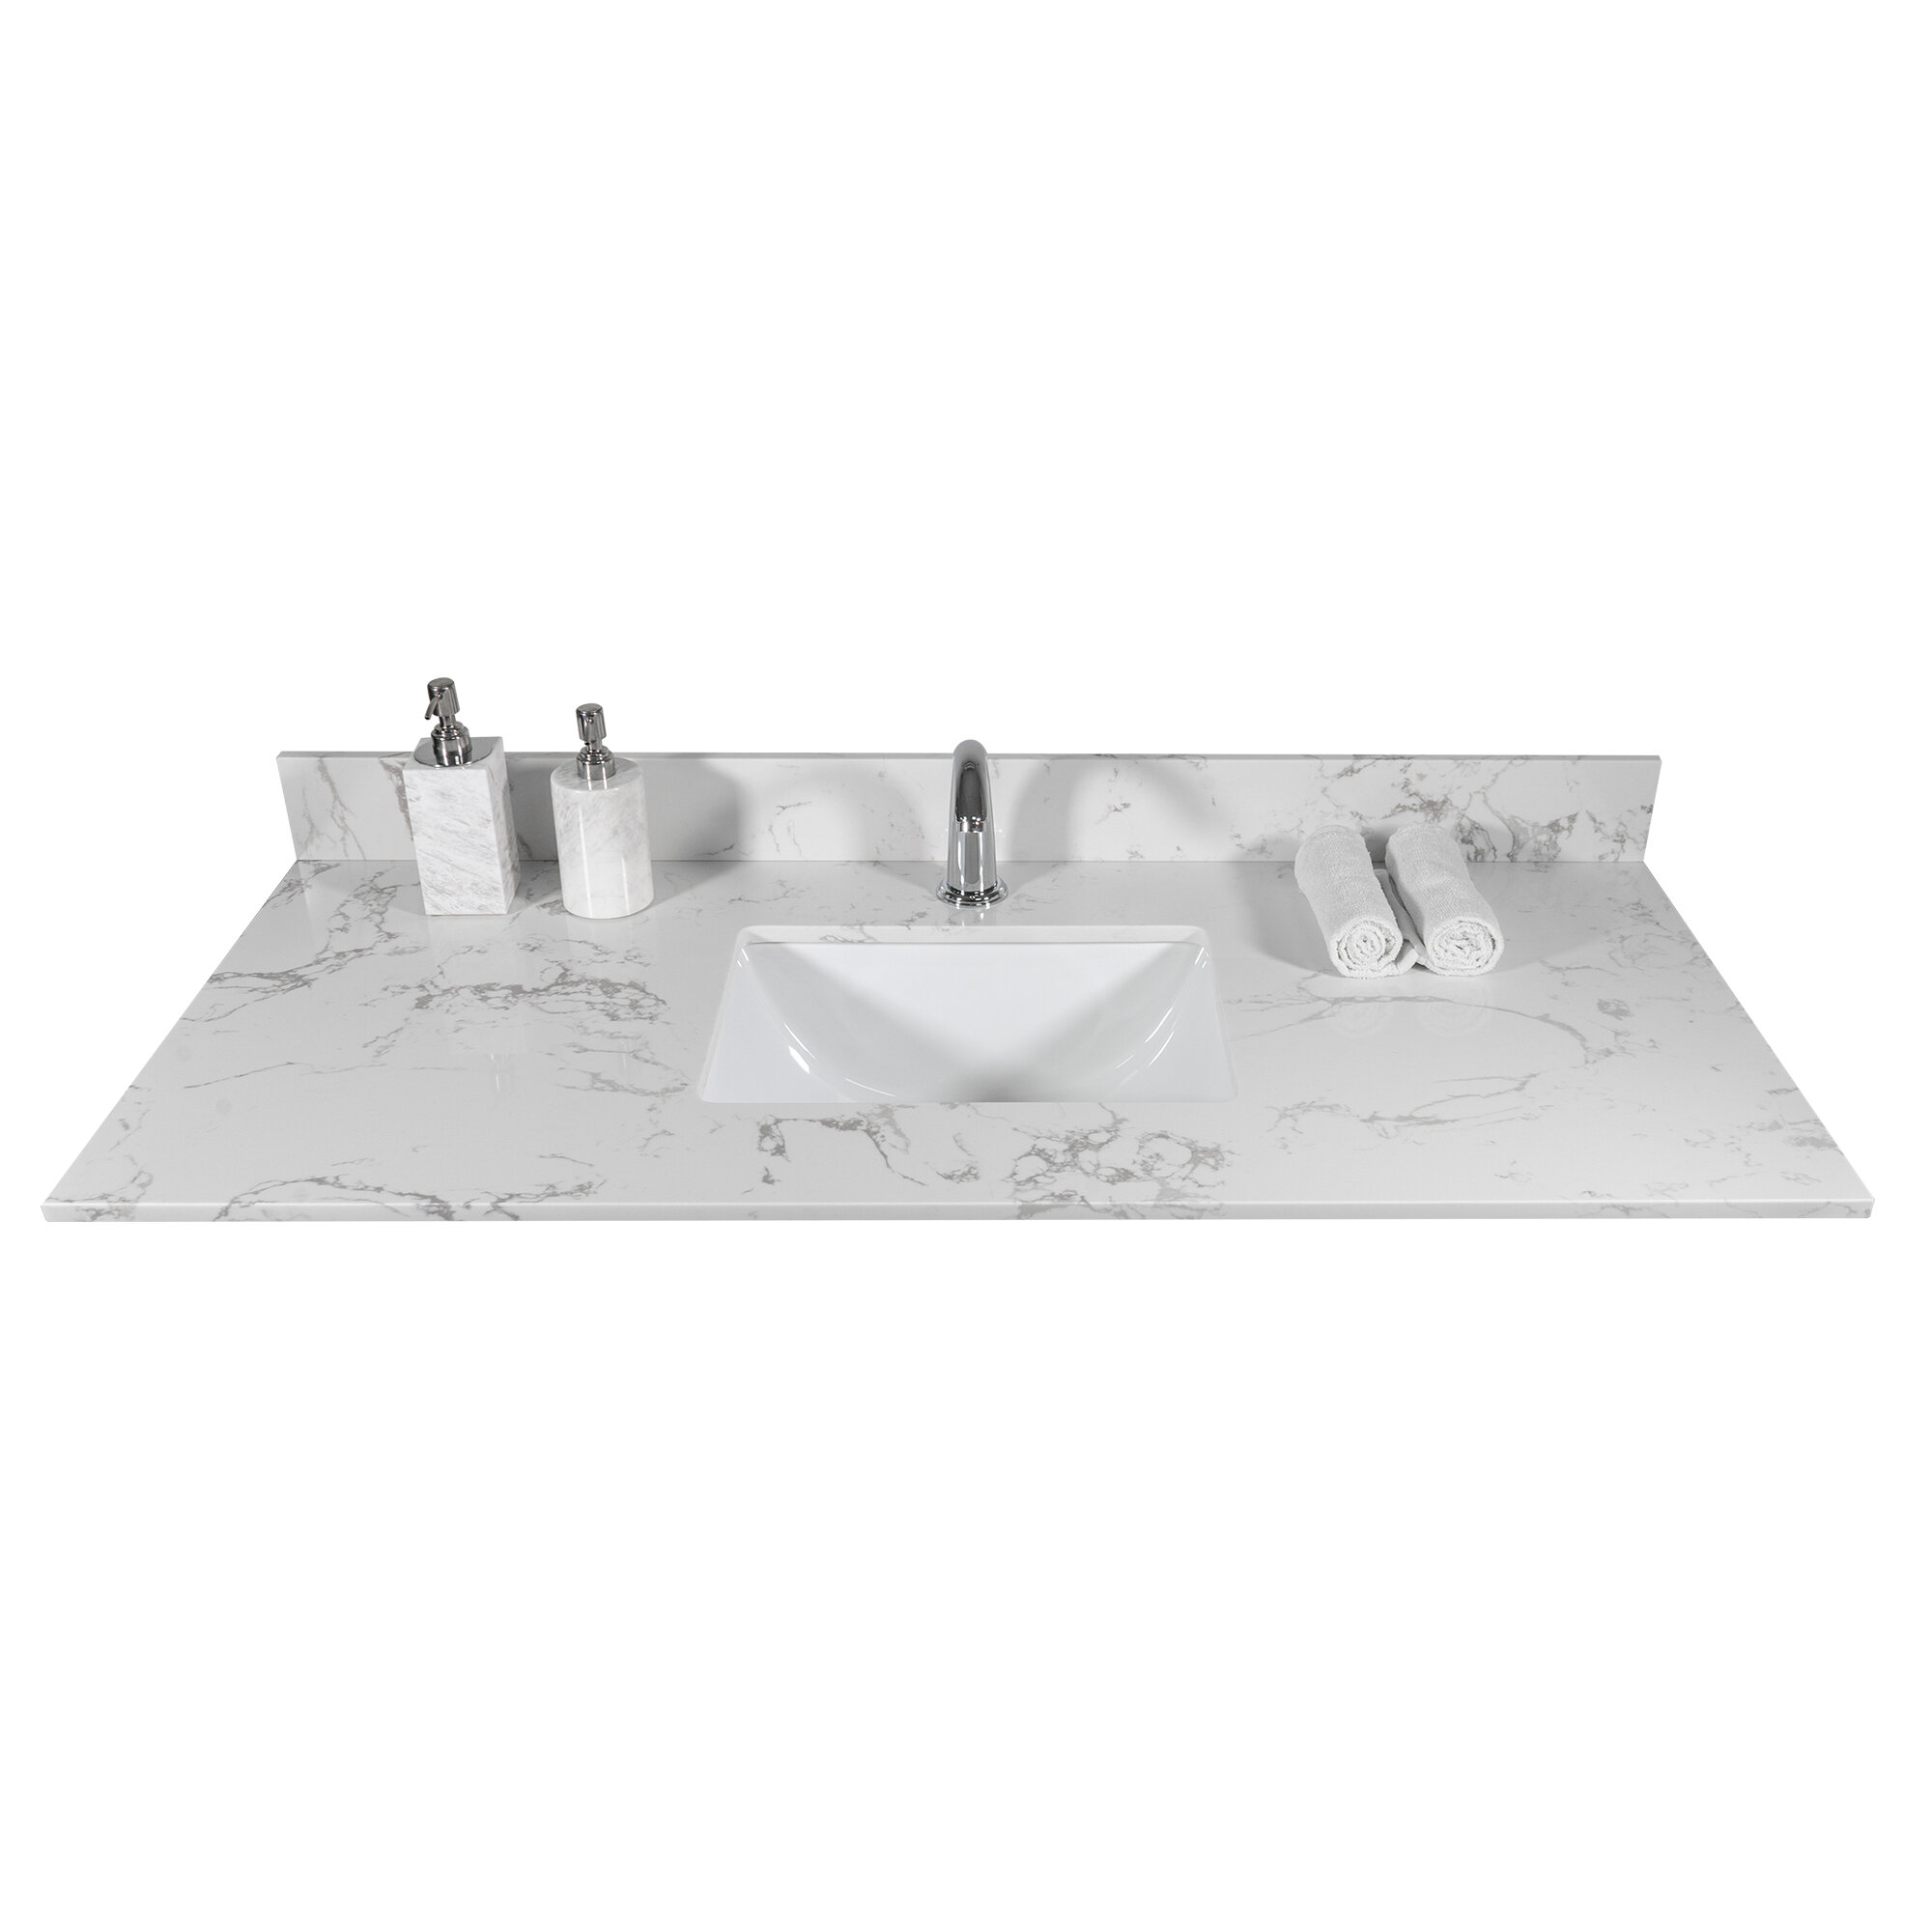 Modison Home 43 X22 Bathroom Stone Vanity Top Engineered Stone Carrara White Marble Color With Rectangle Undermount Ceramic Sink And Single Faucet Hole With Back Splash Wayfair